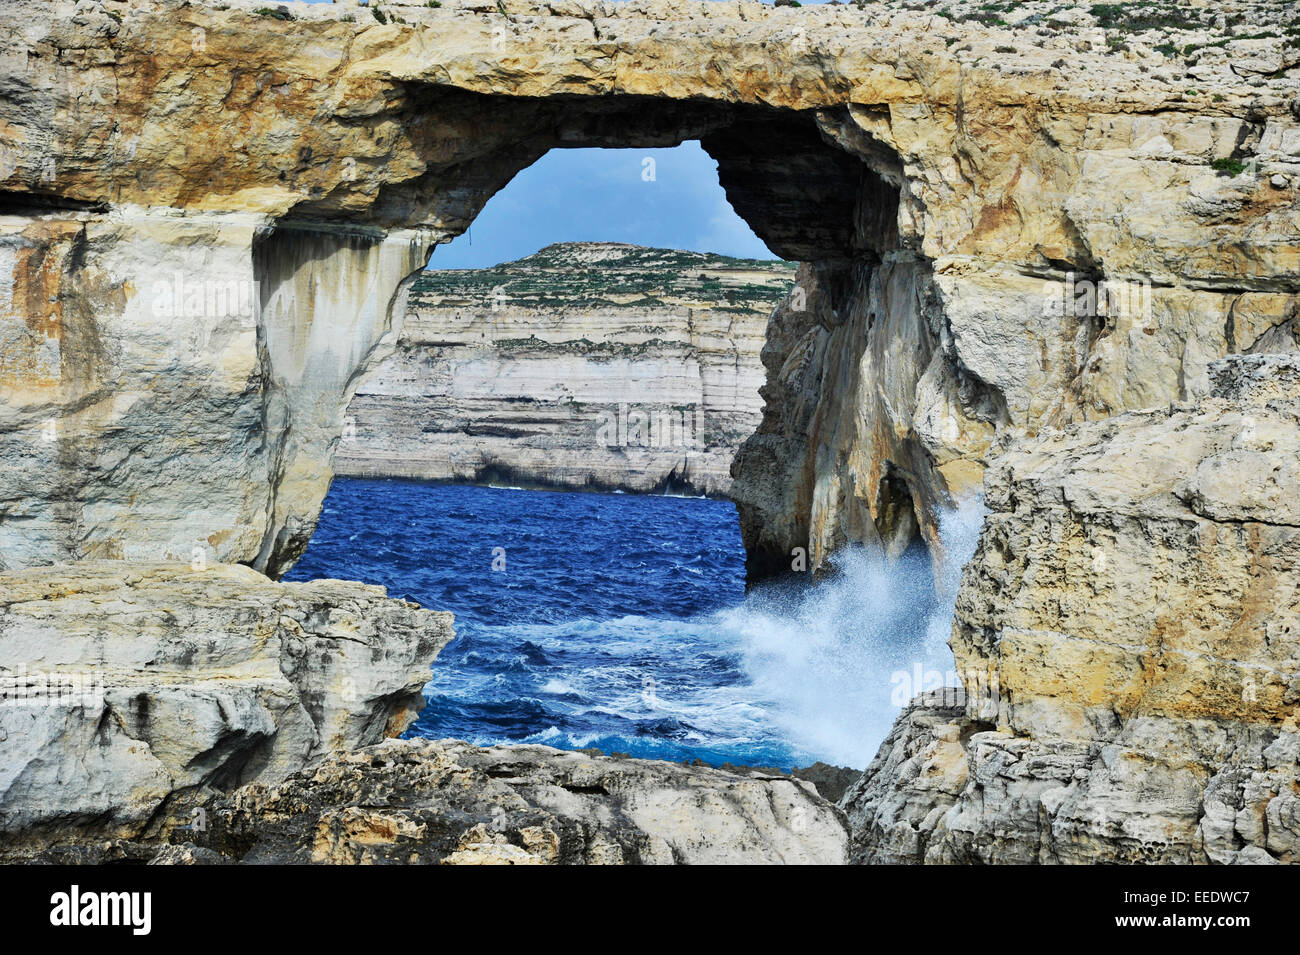 The small island state Malta is a popular travel destination for tourists due to 5,000 years of history, picturesque - Stock Image